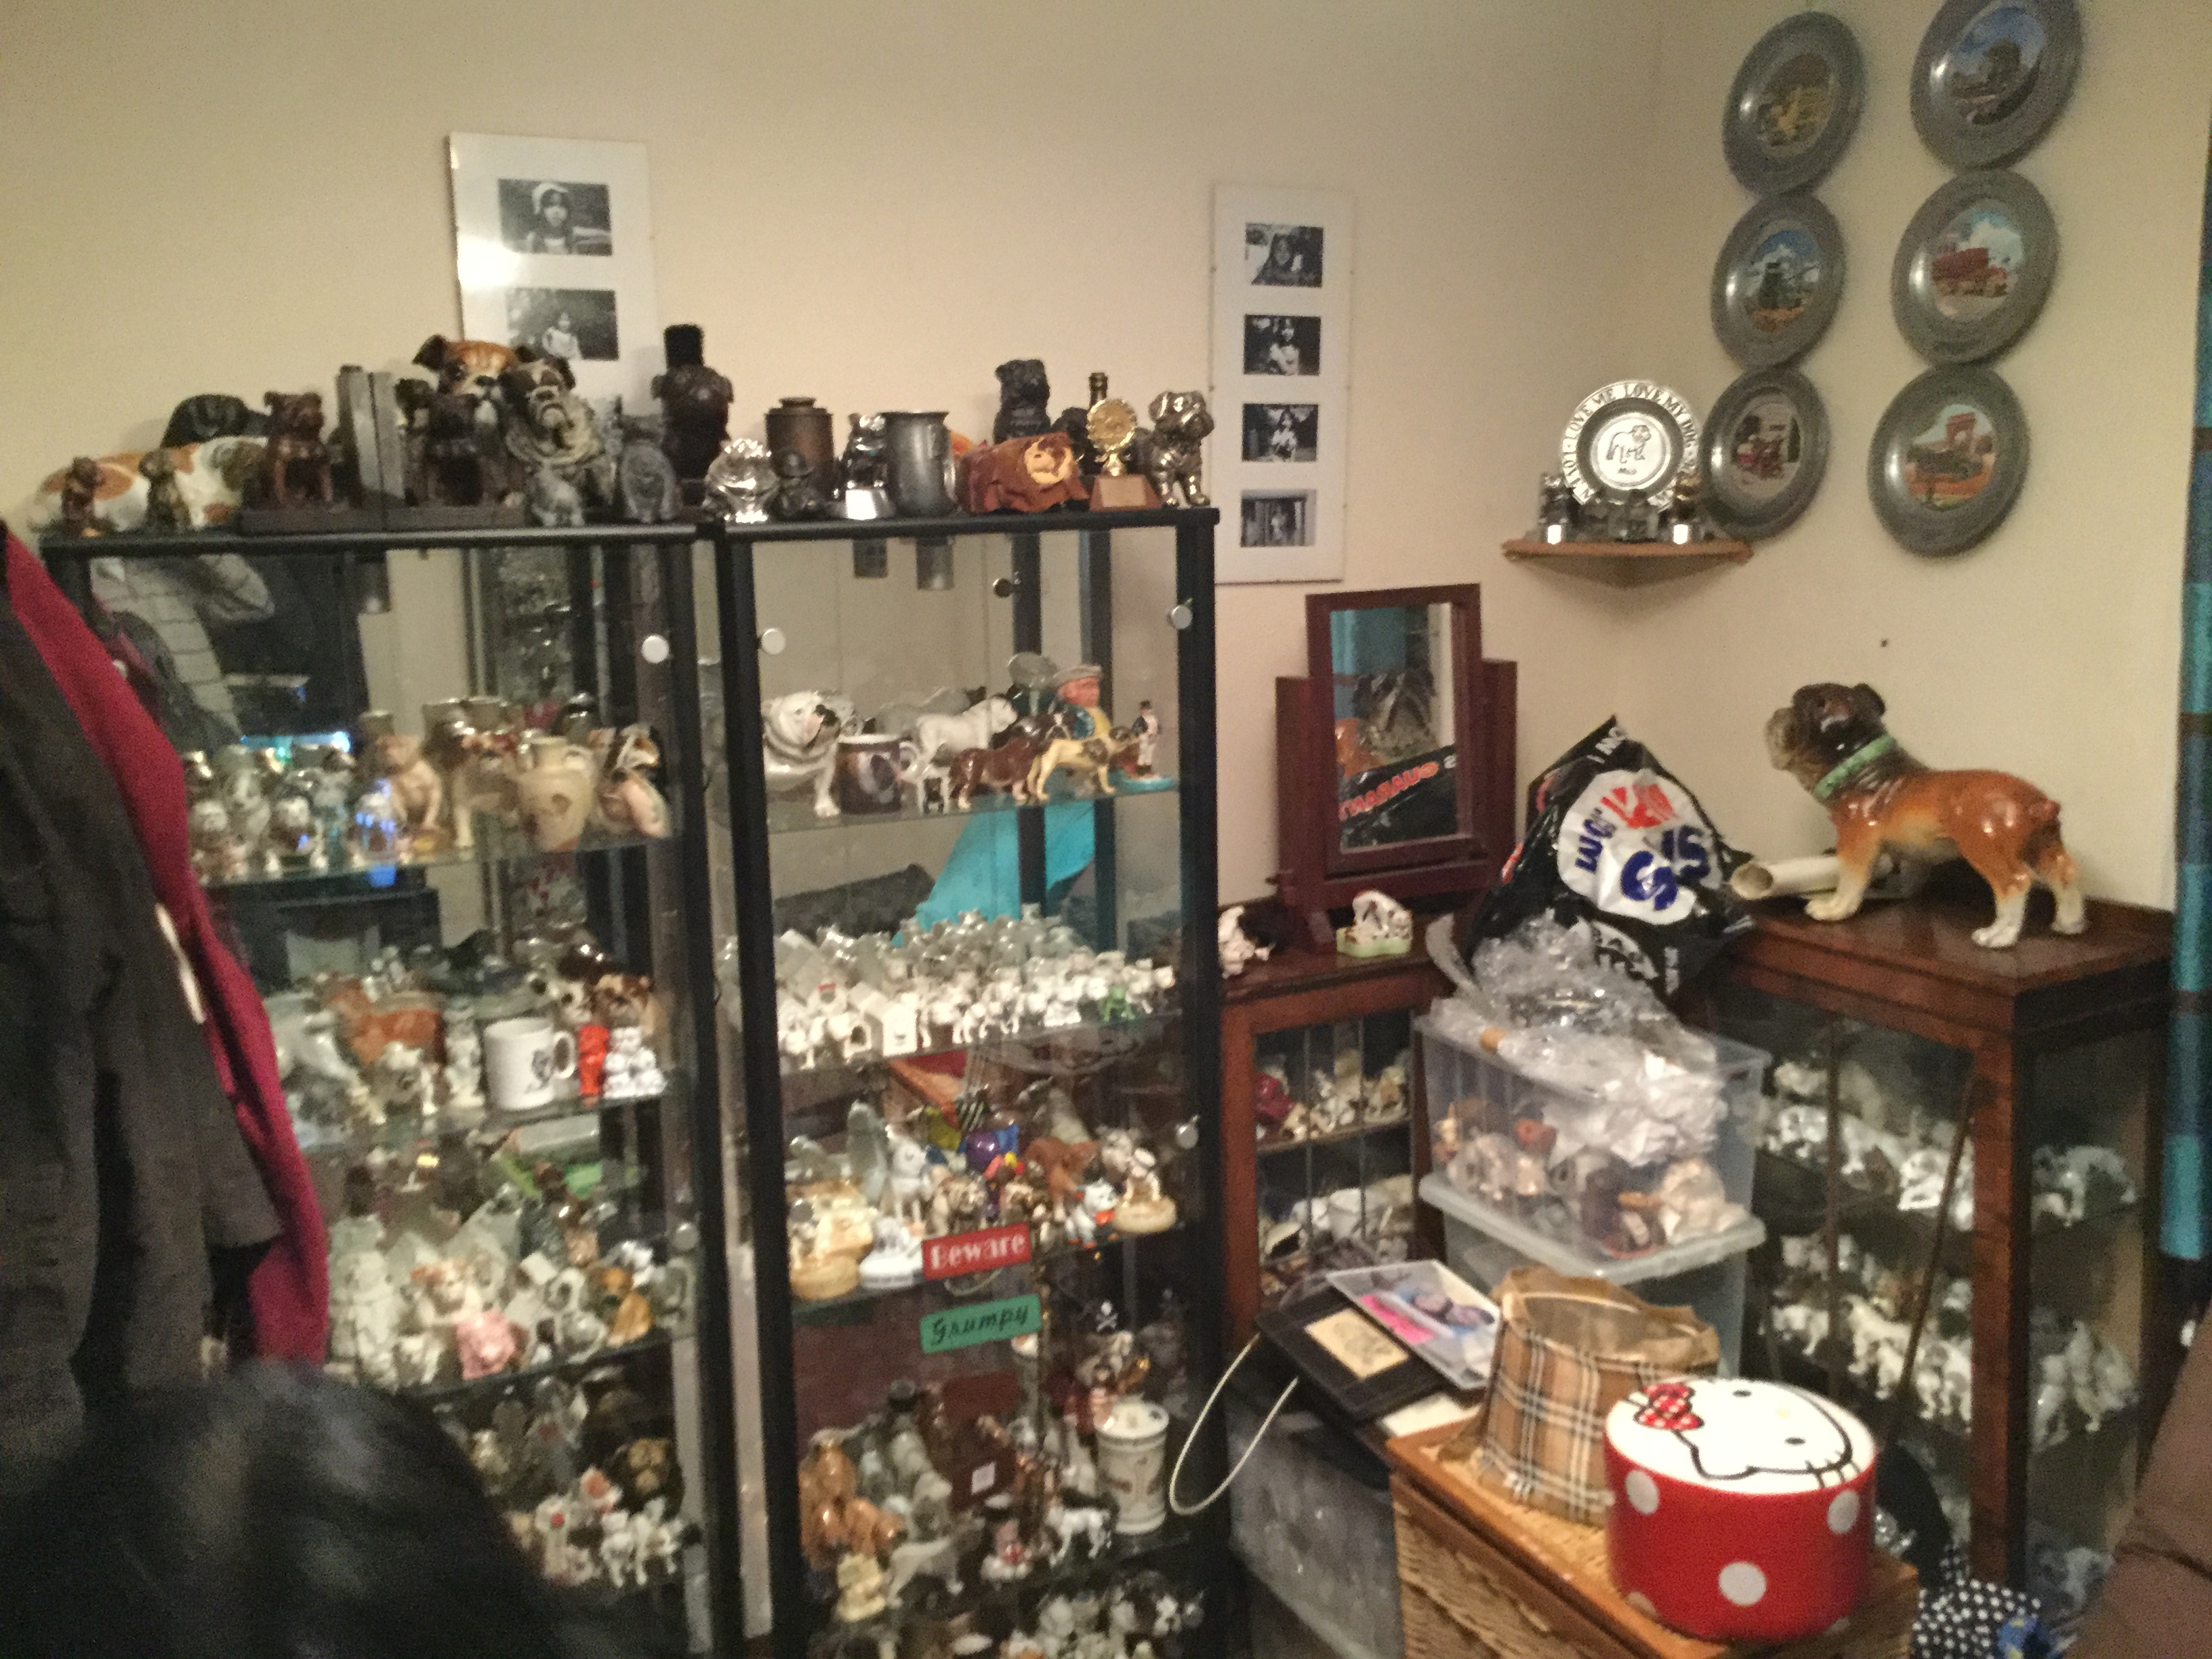 Moving collection Displays